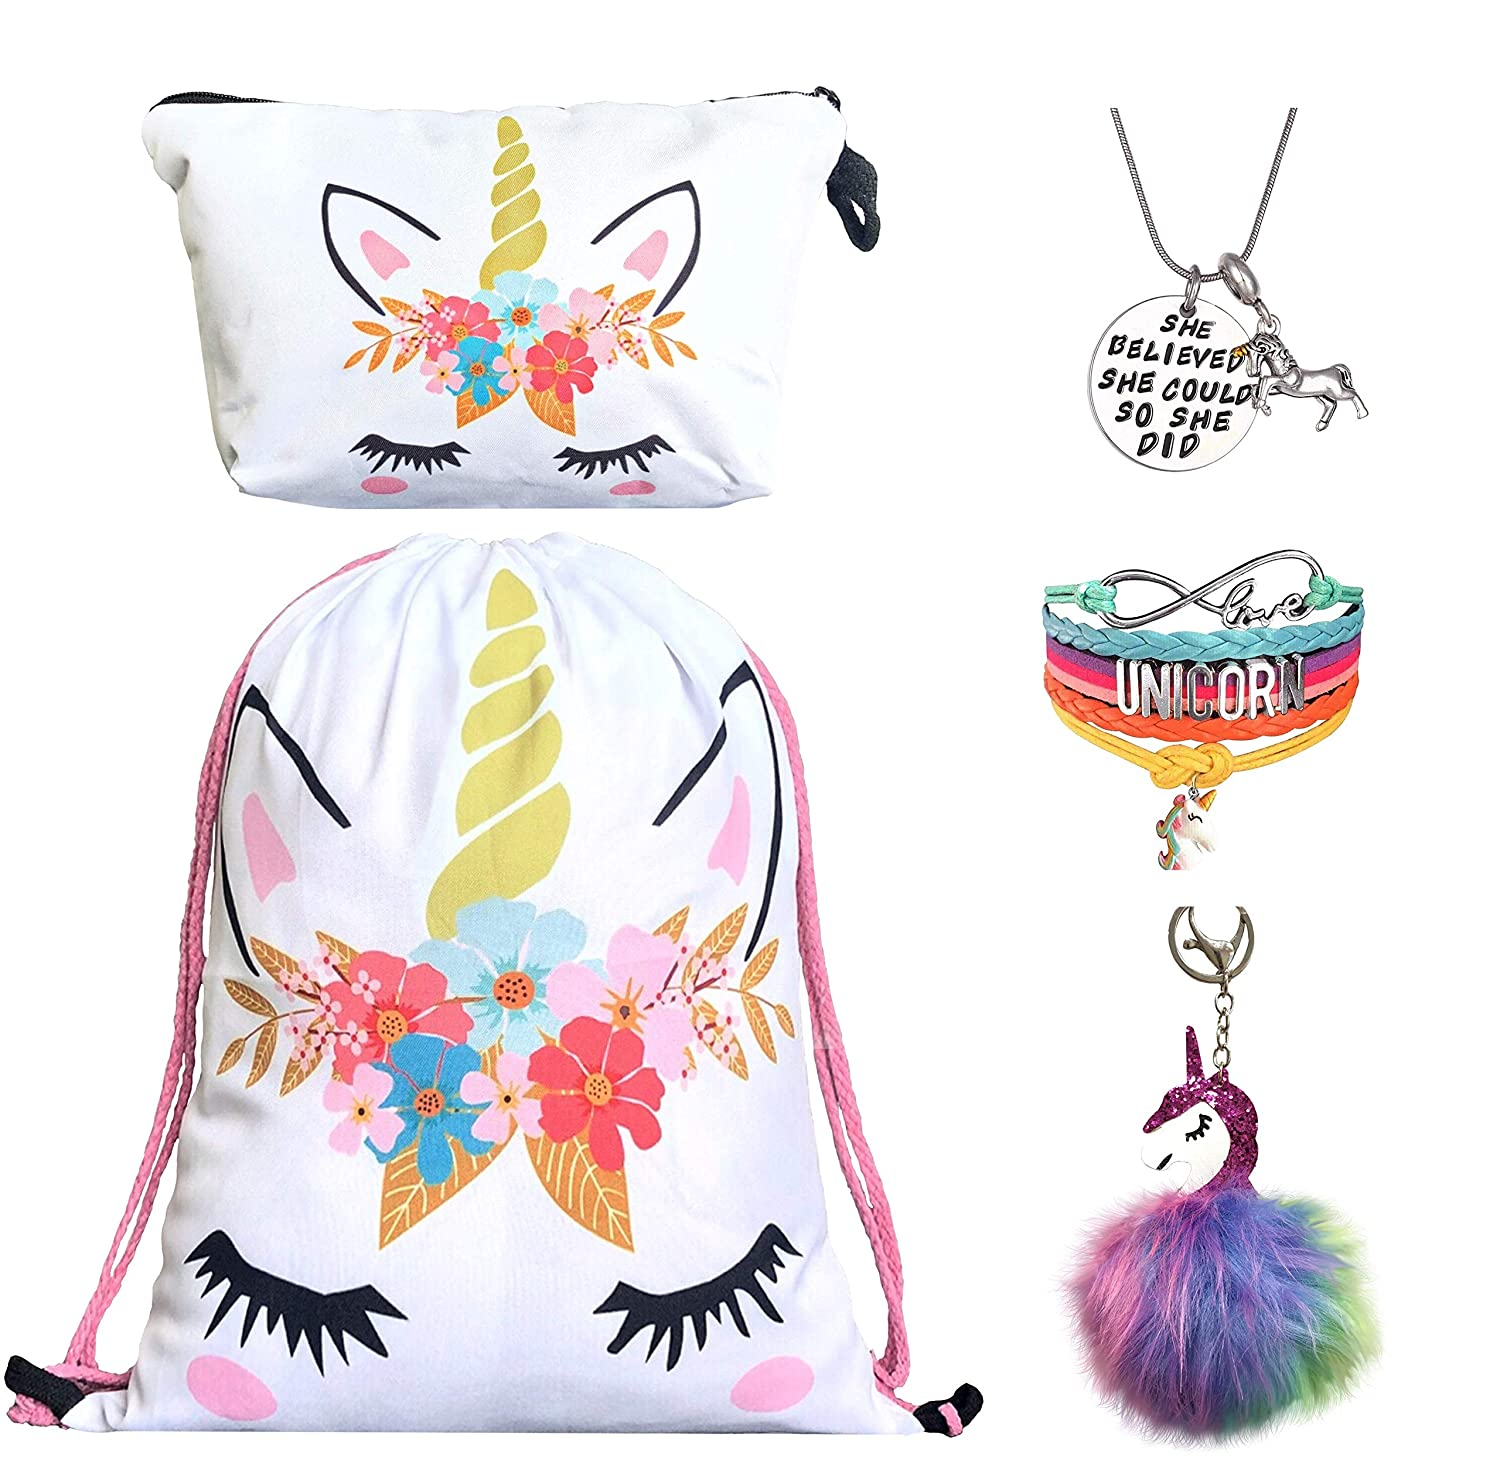 Unicorn Drawstring Backpack//Makeup Bag//Bracelet//Inspirational Necklace//Hair Ties Sequin Unicorn Rainbow Unicorn Gifts for Girls